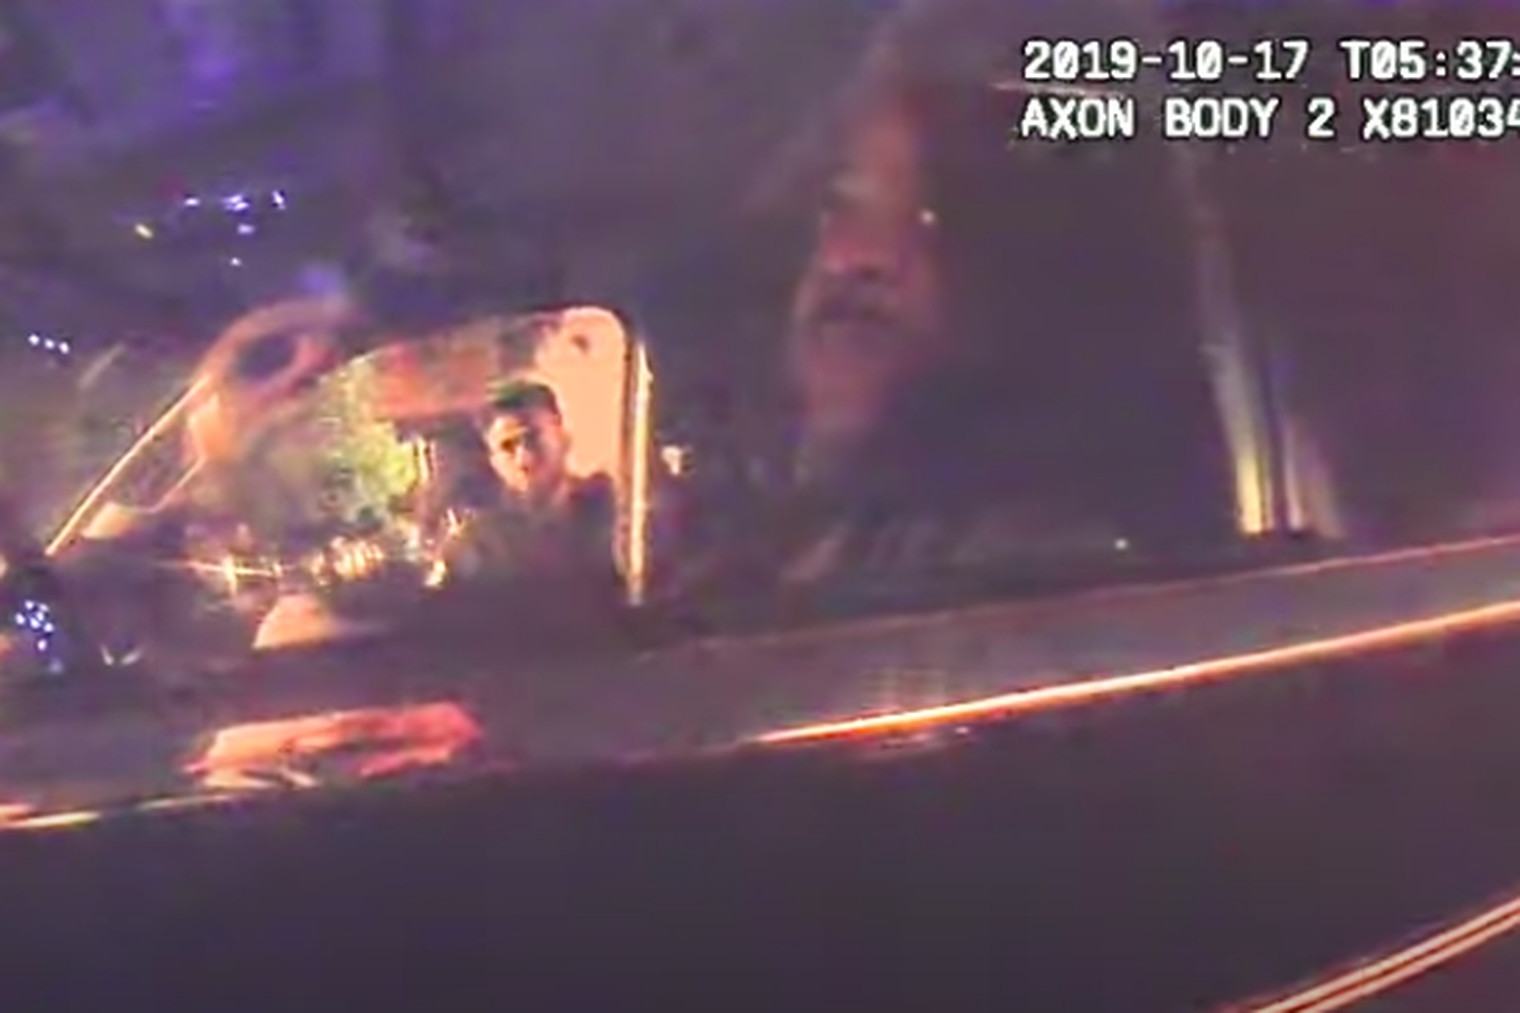 Bodycam video from Chicago police officers who approached former Supt. Eddie Johnson when he fell asleep behind the wheel.